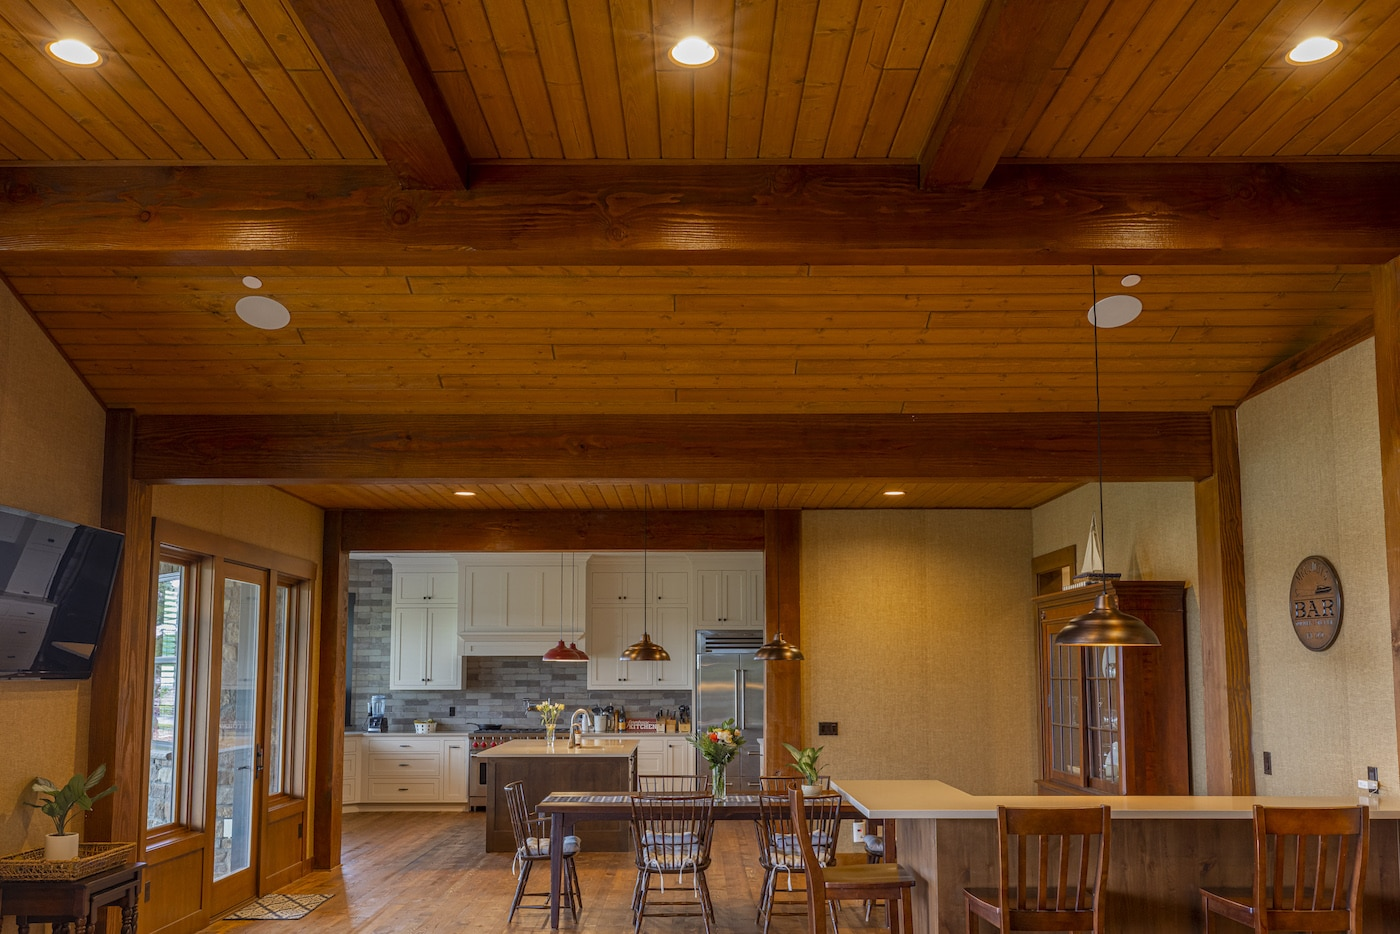 Stable Geometric Shapes In Home Design